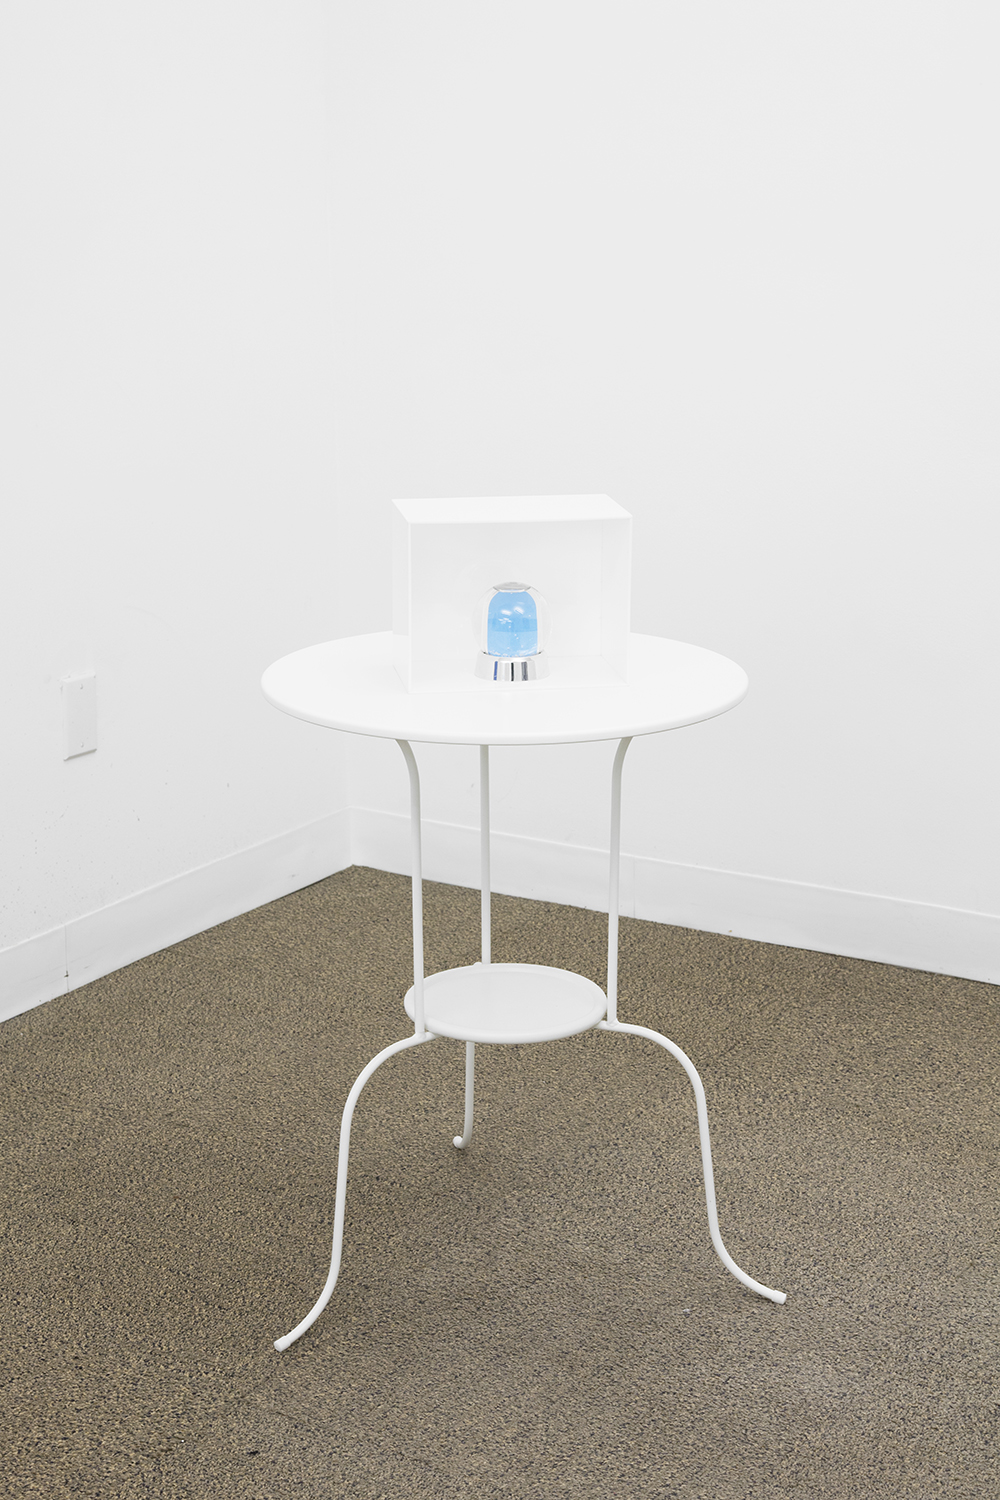 ALEX ITO  For Tolian Soran III  , 2013   Aluminum table, plexiglass, snow globe, key chain, books and inkjet print   34 x 20 x 20 inches